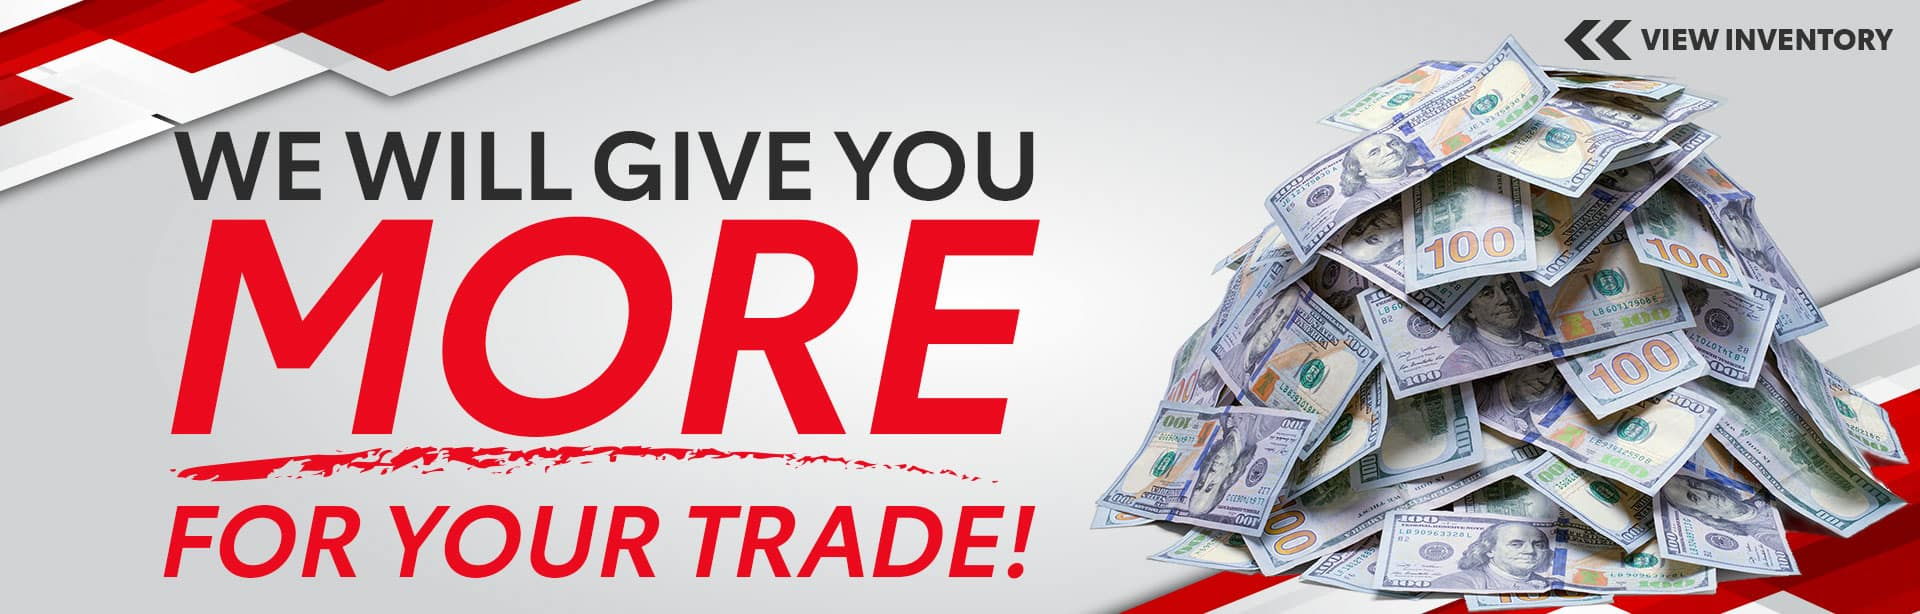 We Will Give You More for Your Trade at Bev Smith Toyota!